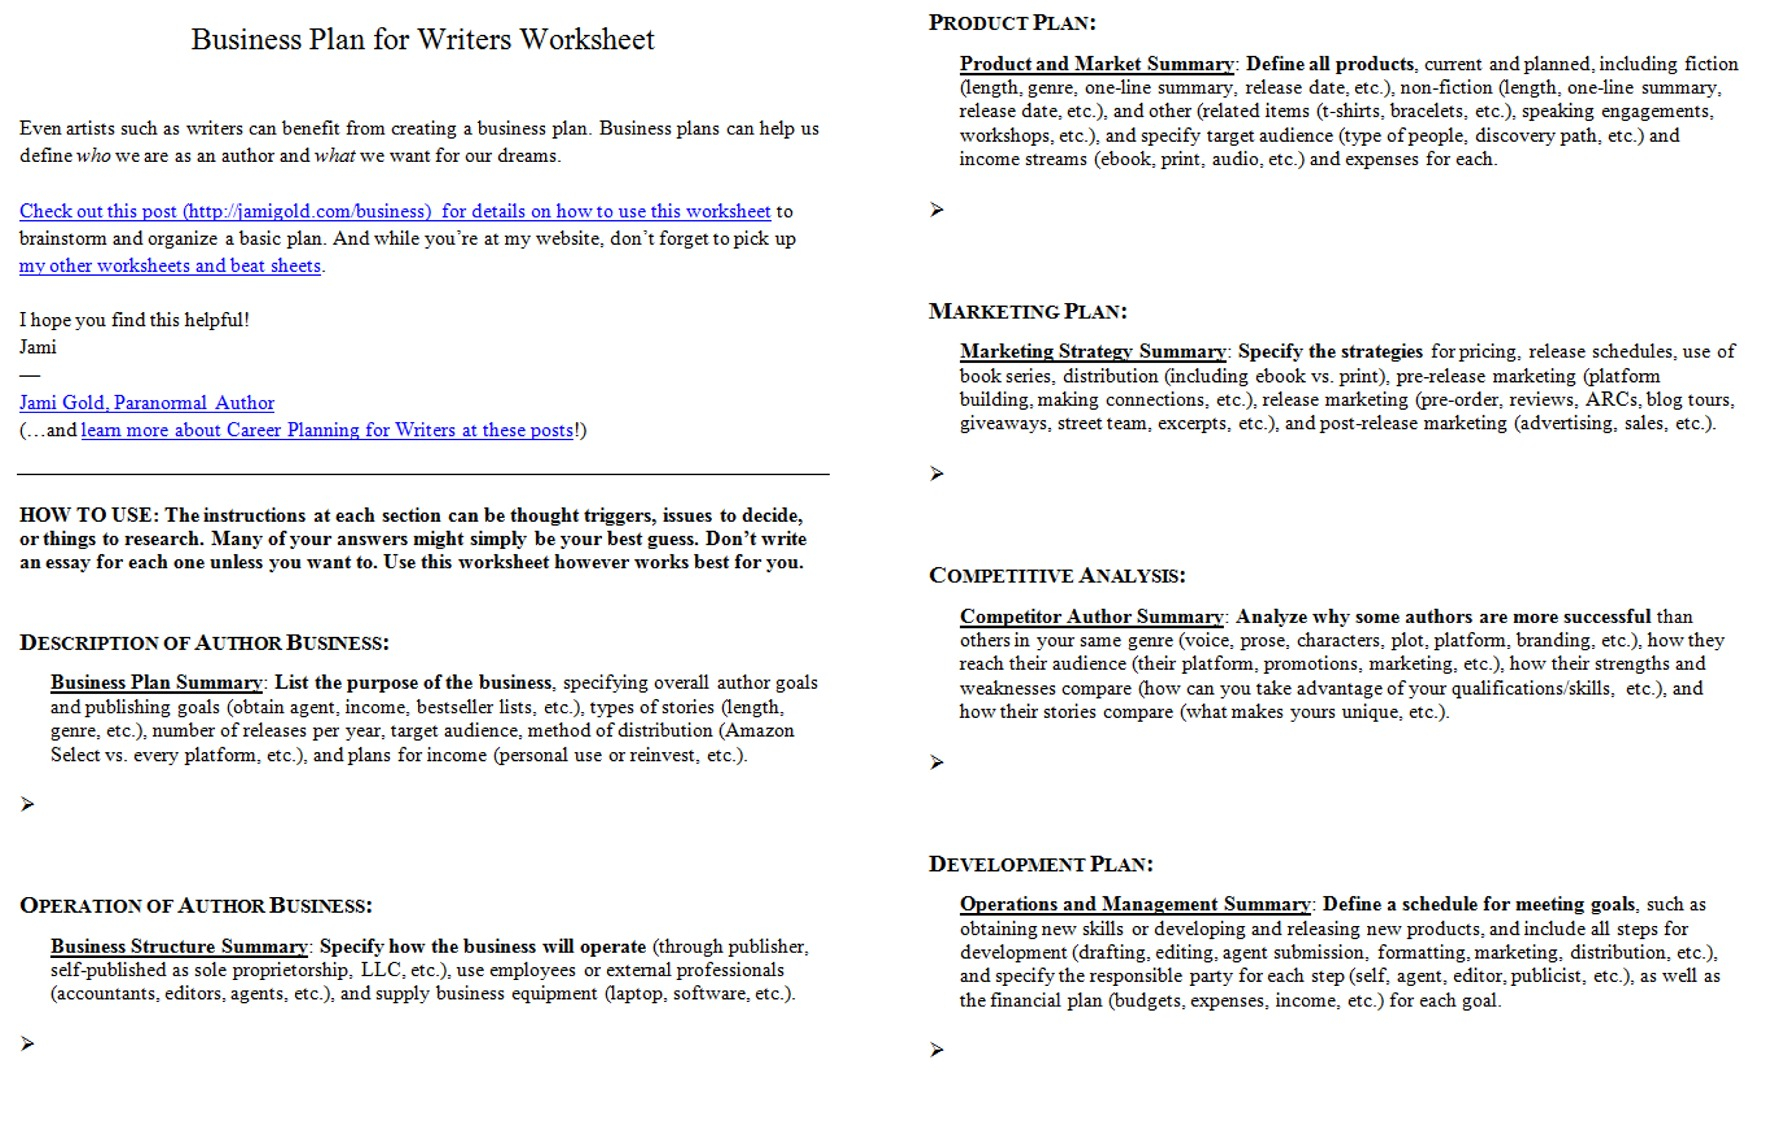 Aldiablosus  Surprising Worksheets For Writers  Jami Gold Paranormal Author With Hot Screen Shot Of Both Pages Of The Business Plan For Writers Worksheet With Appealing Th Grade Science Printable Worksheets Also Skeletal Worksheet In Addition Properties Of Circles Worksheet And St Math Worksheets As Well As Divide Decimals By Whole Numbers Worksheet Additionally Opinion Writing Worksheets From Jamigoldcom With Aldiablosus  Hot Worksheets For Writers  Jami Gold Paranormal Author With Appealing Screen Shot Of Both Pages Of The Business Plan For Writers Worksheet And Surprising Th Grade Science Printable Worksheets Also Skeletal Worksheet In Addition Properties Of Circles Worksheet From Jamigoldcom